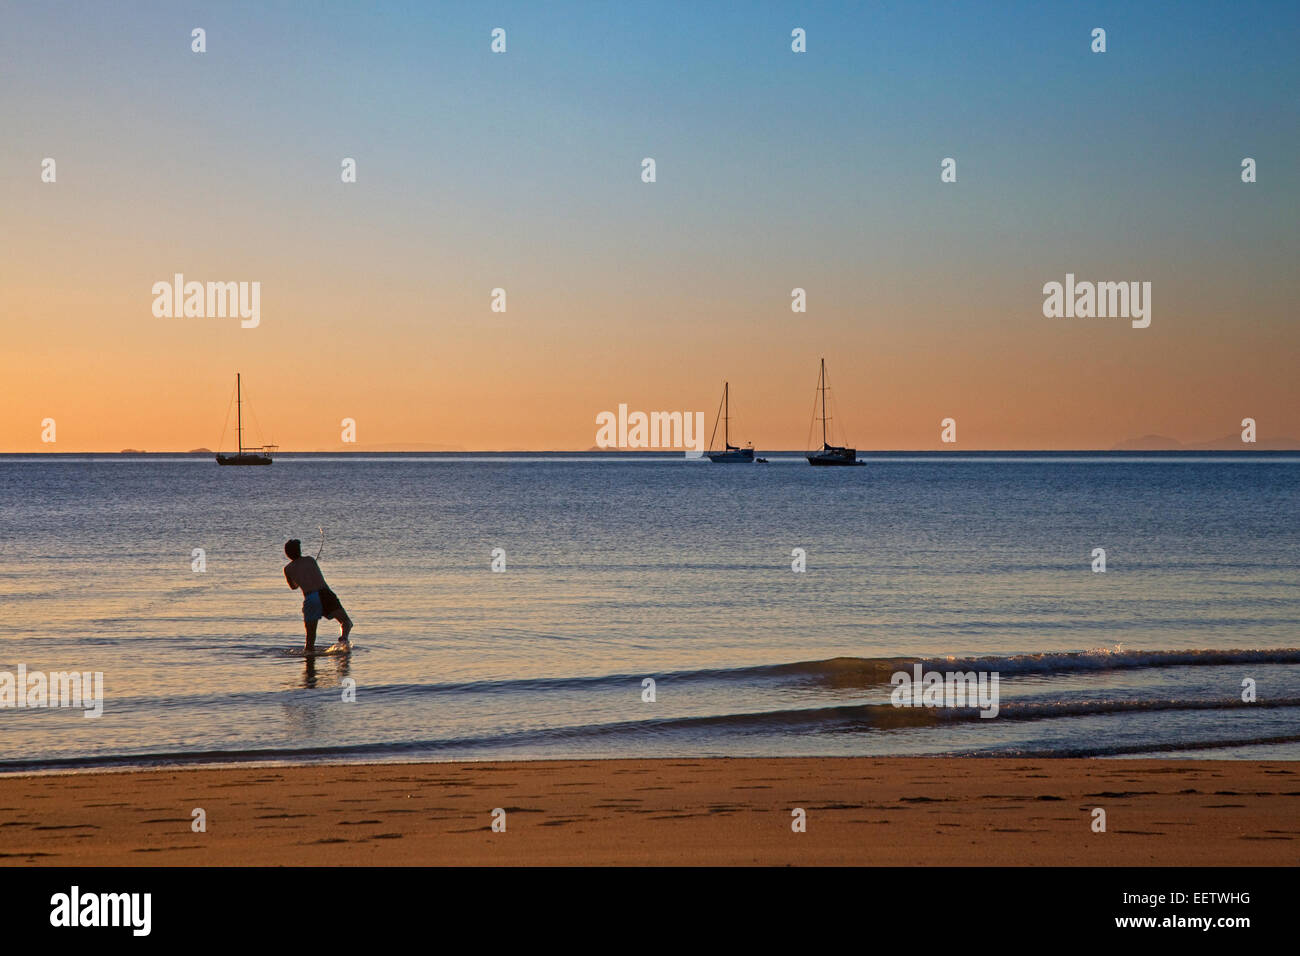 Sailing boats at sunset and sea angler fishing from the beach at Horseshoe Bay on Magnetic Island along the Coral - Stock Image